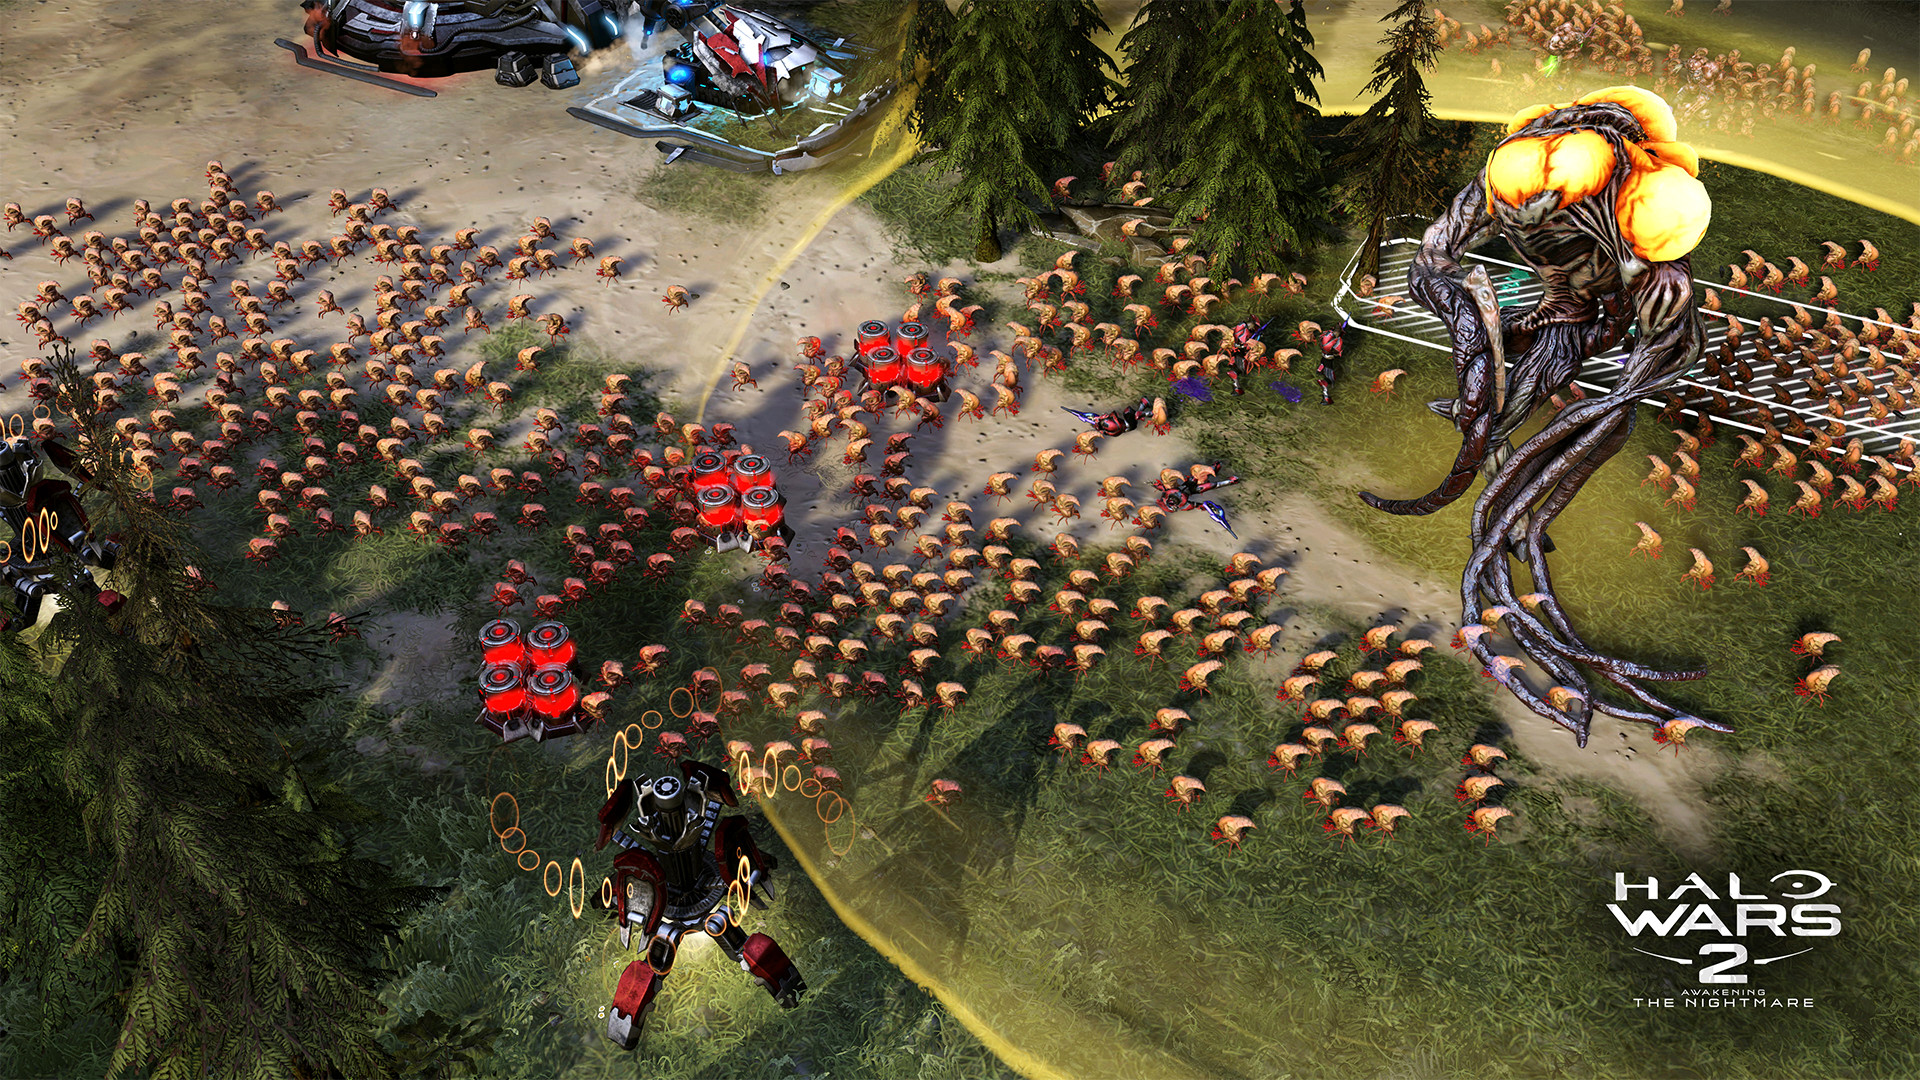 Halo Wars 2: Awakening the Nightmare release date set for